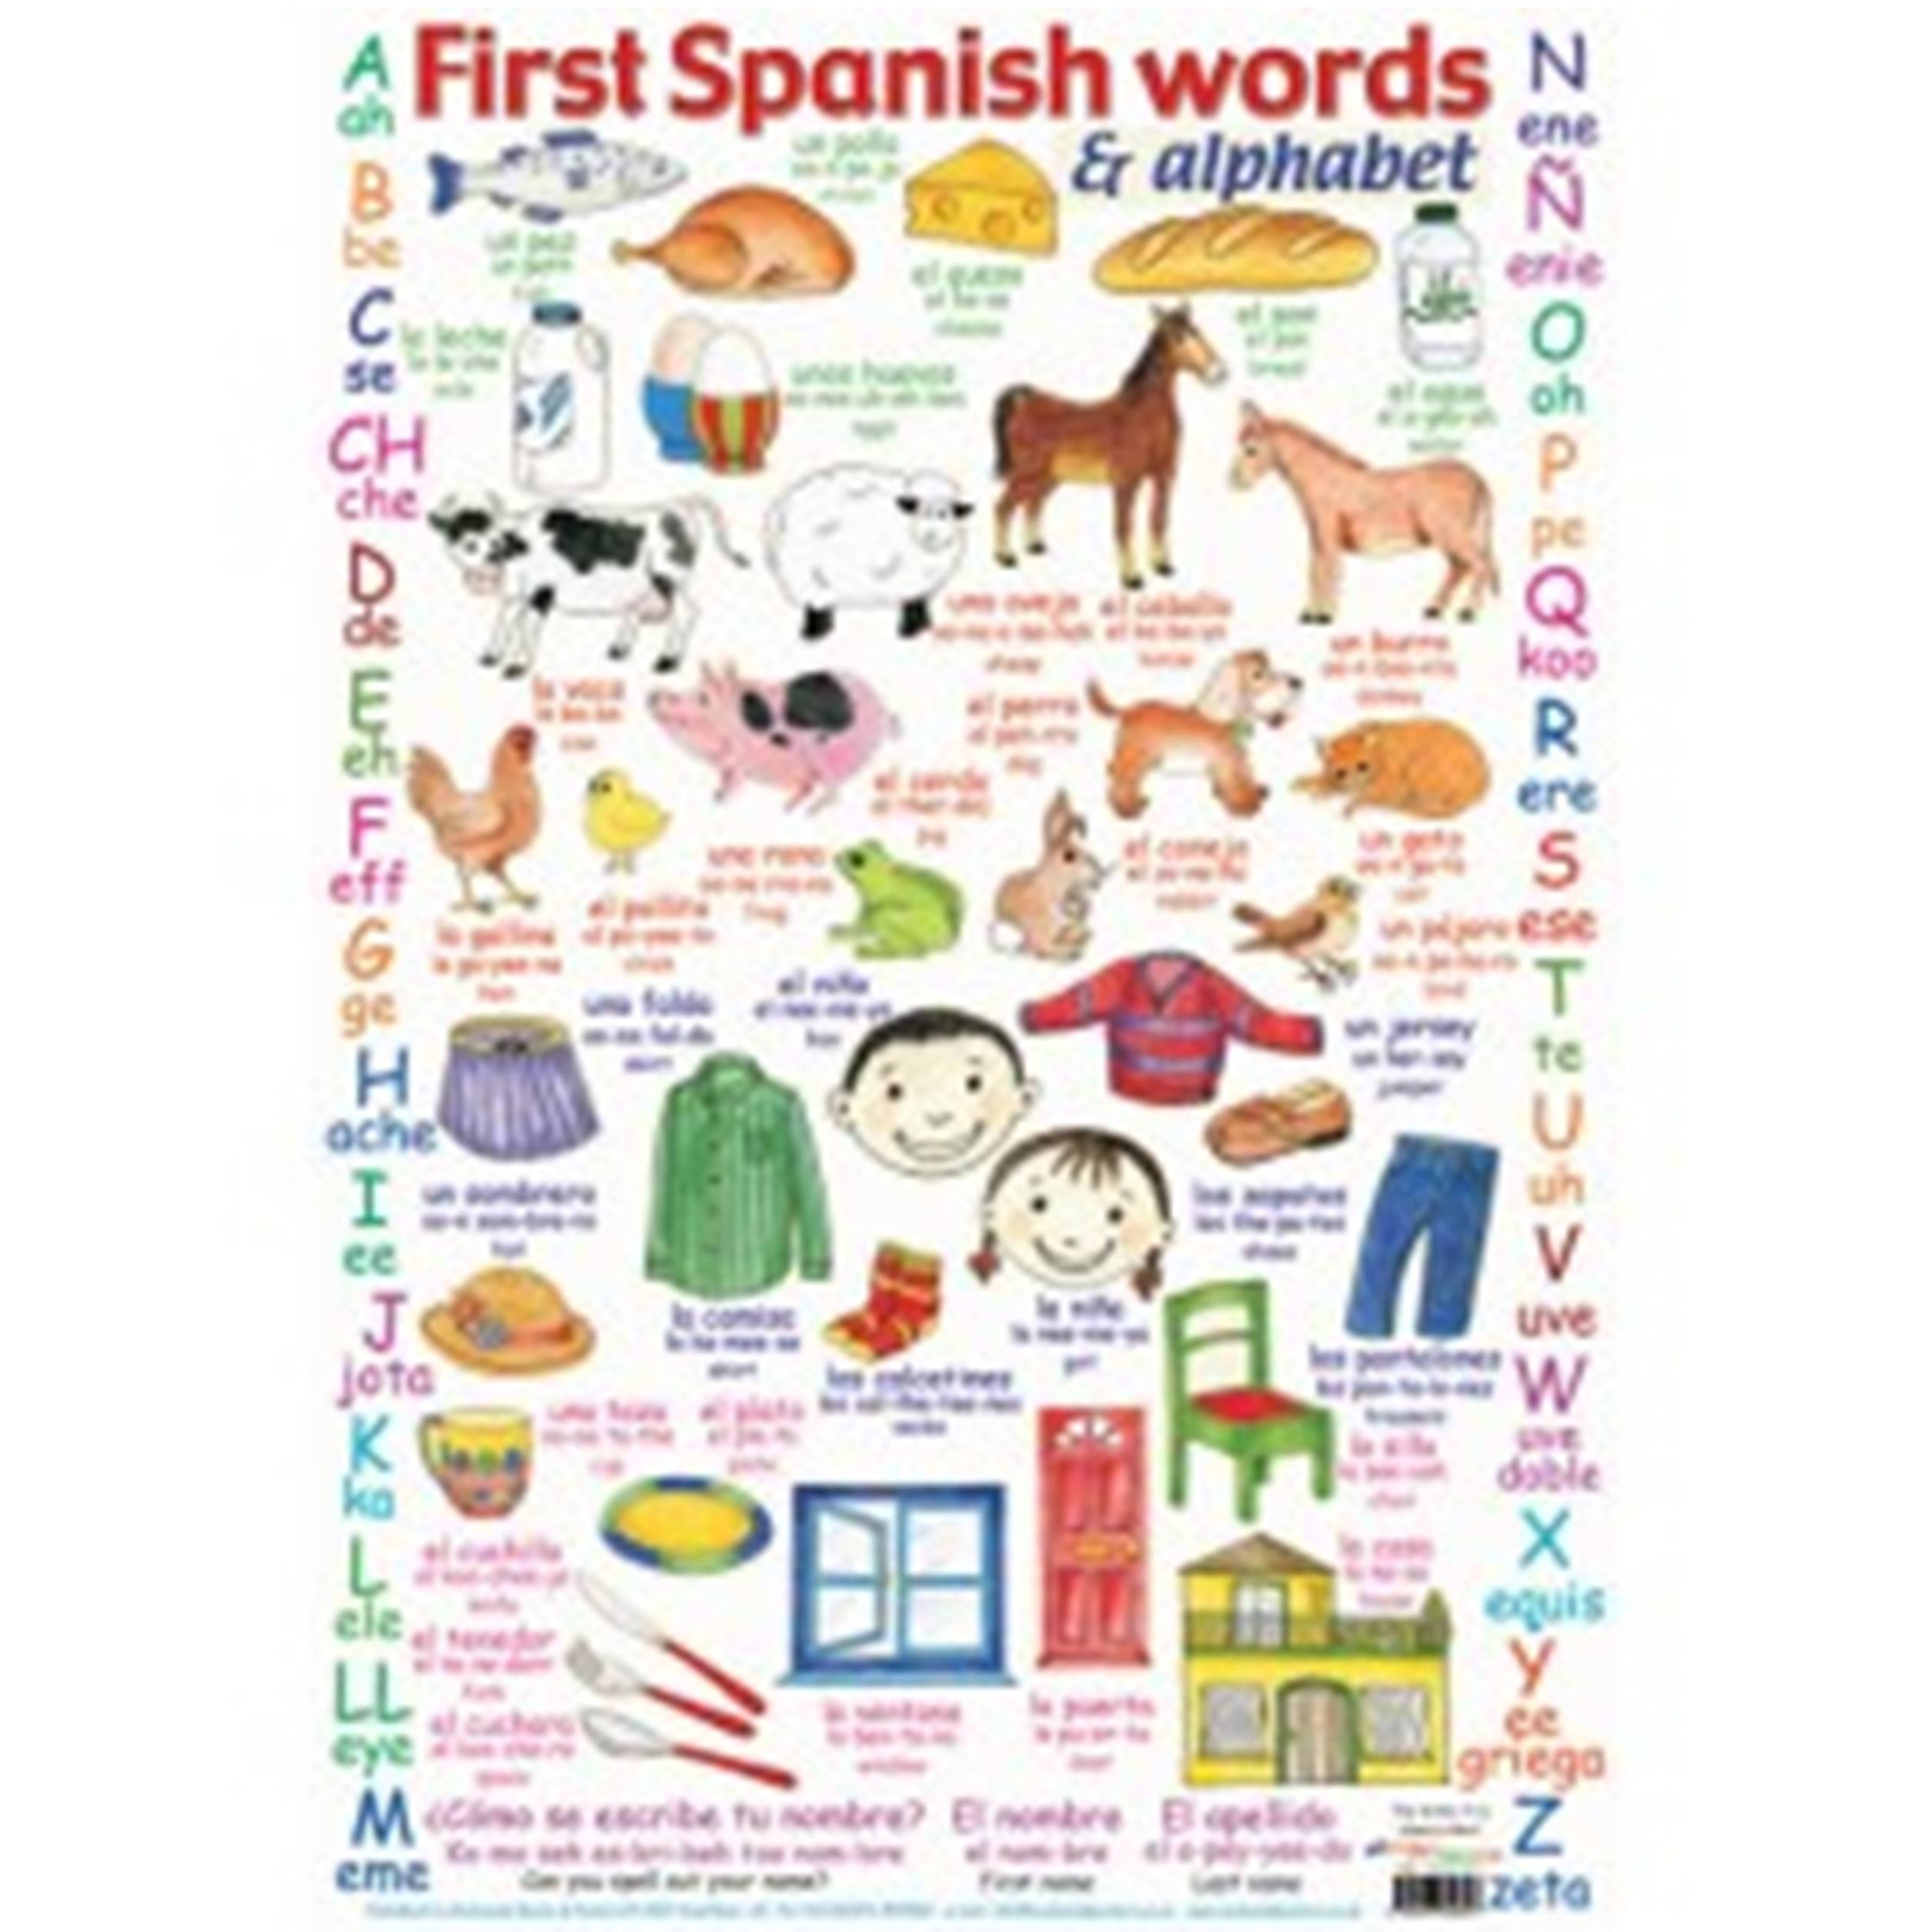 Spanish Words And Alphabet Poster